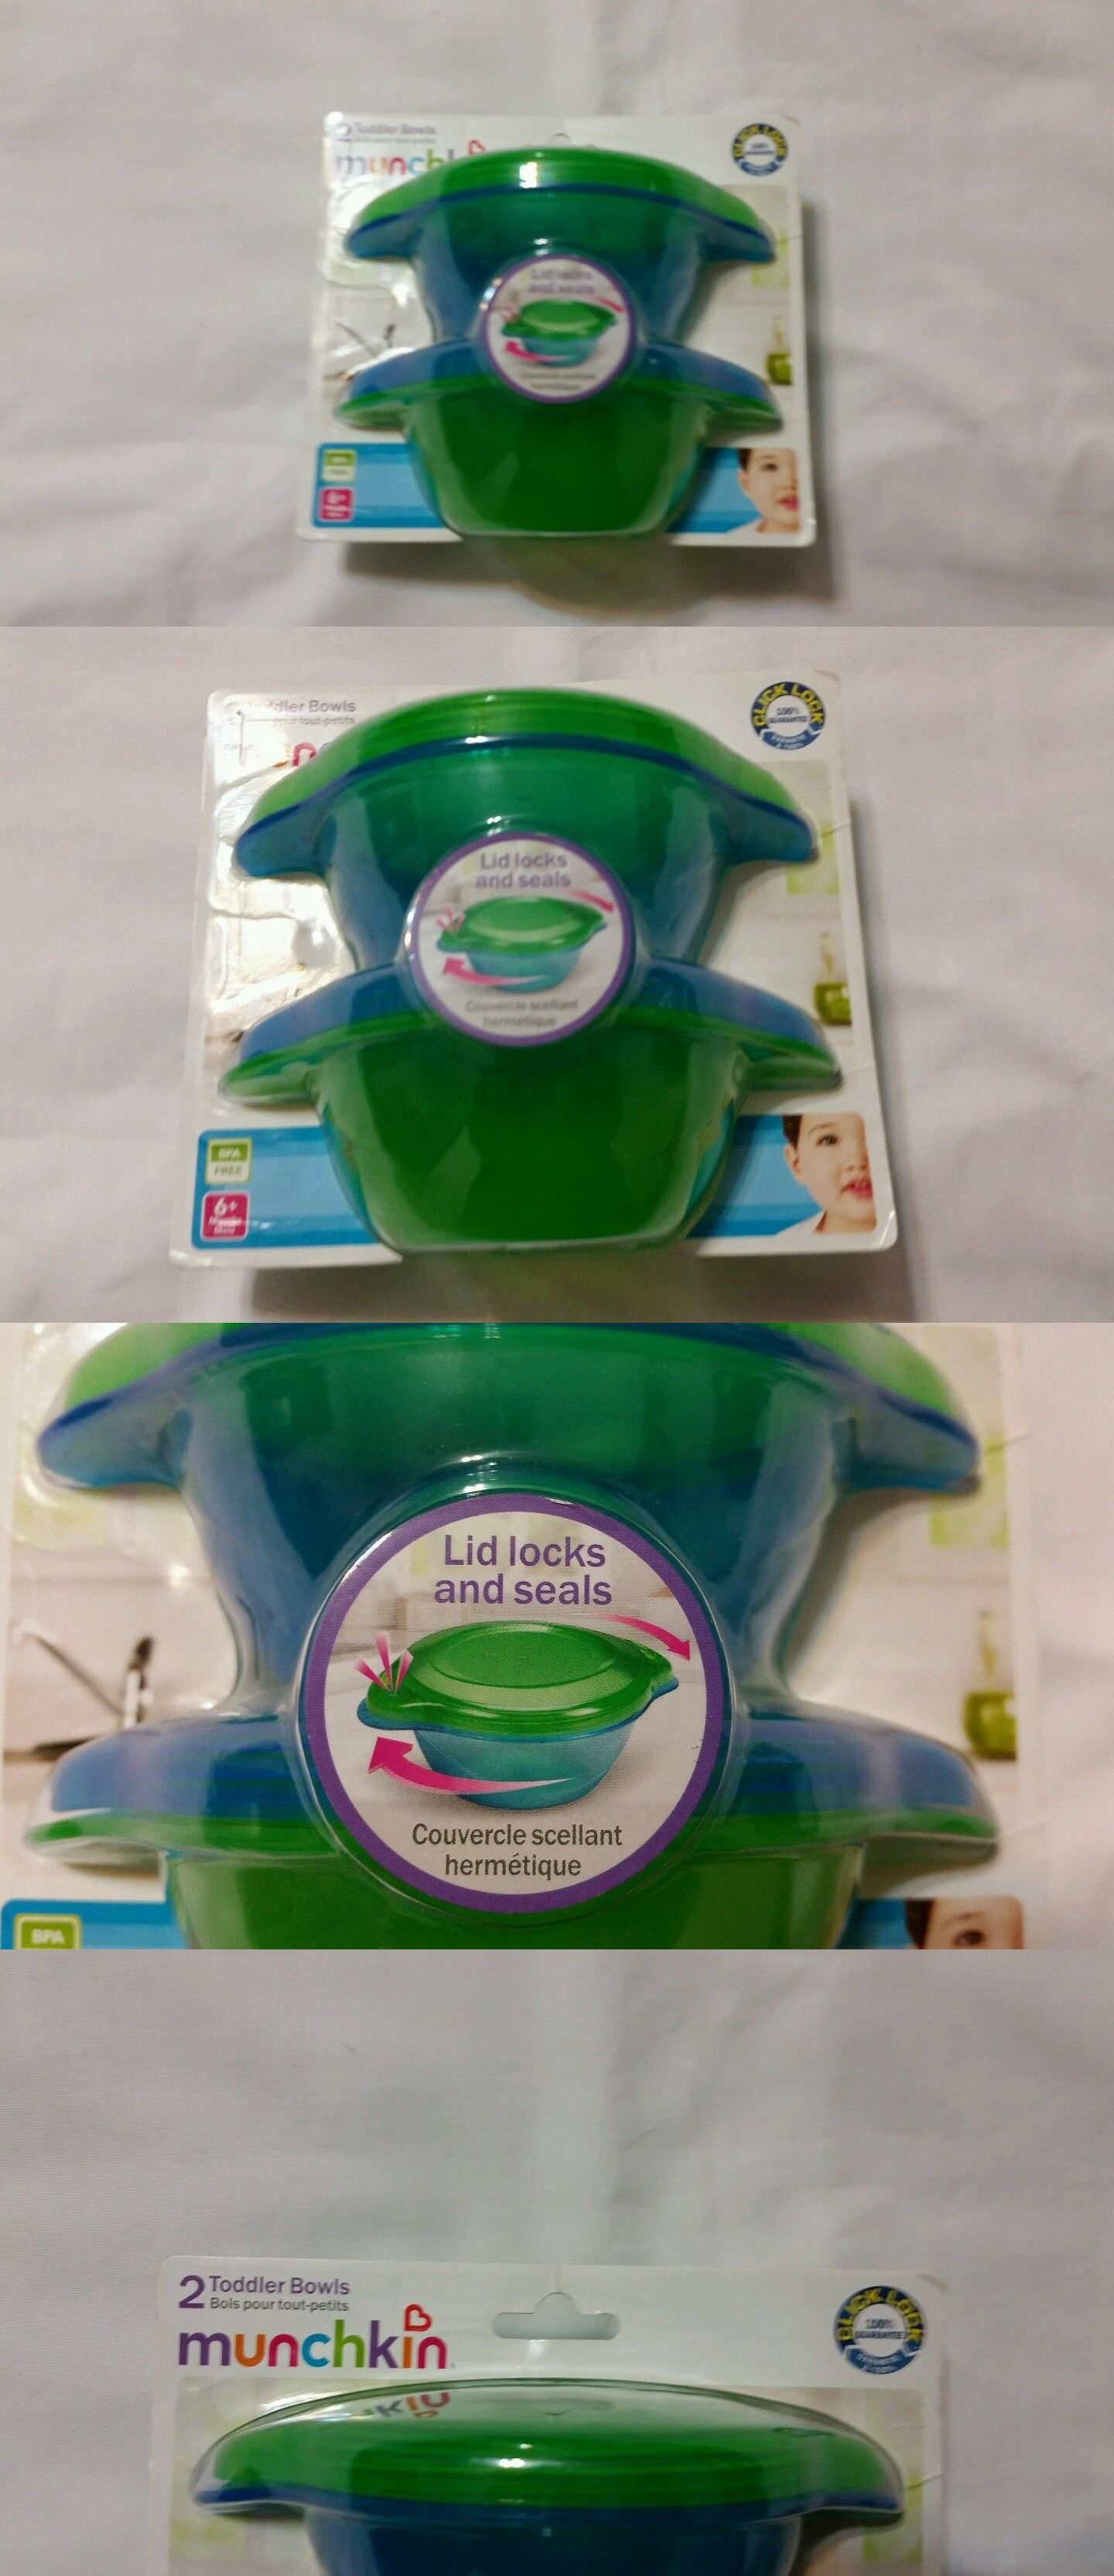 Bowls & Plates Cups, Dishes & Utensils Just Primo Passi Suction Bowl Feeding Set Bpa Free Damaged Box